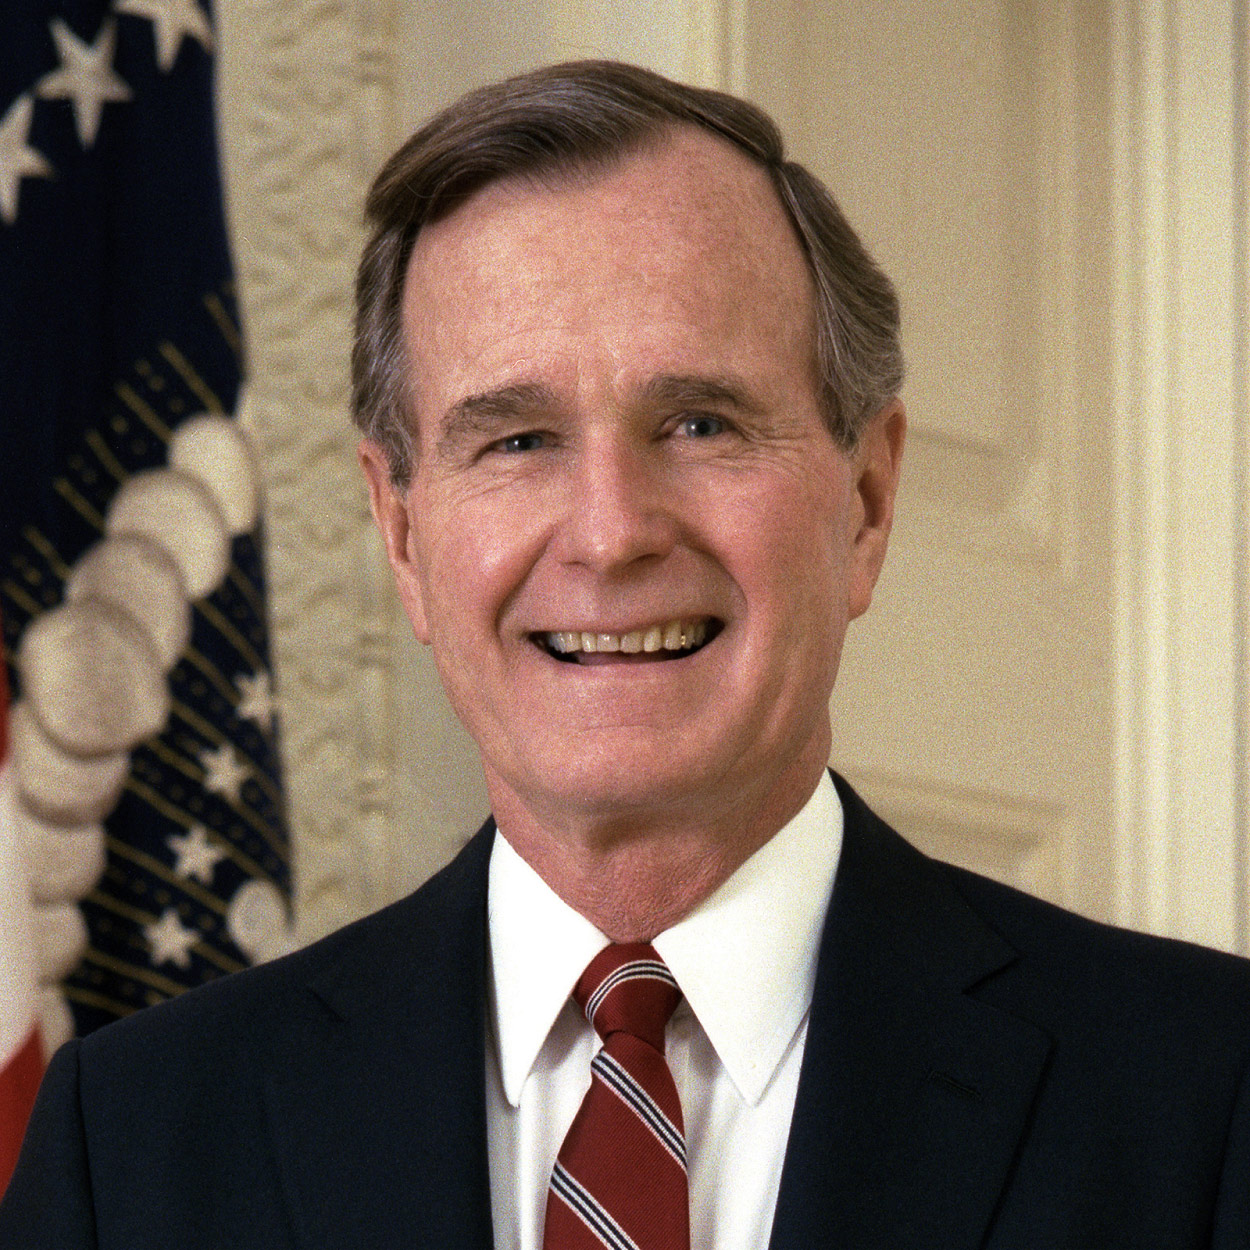 Portrait of George H. W. Bush, the 41st President of the United States